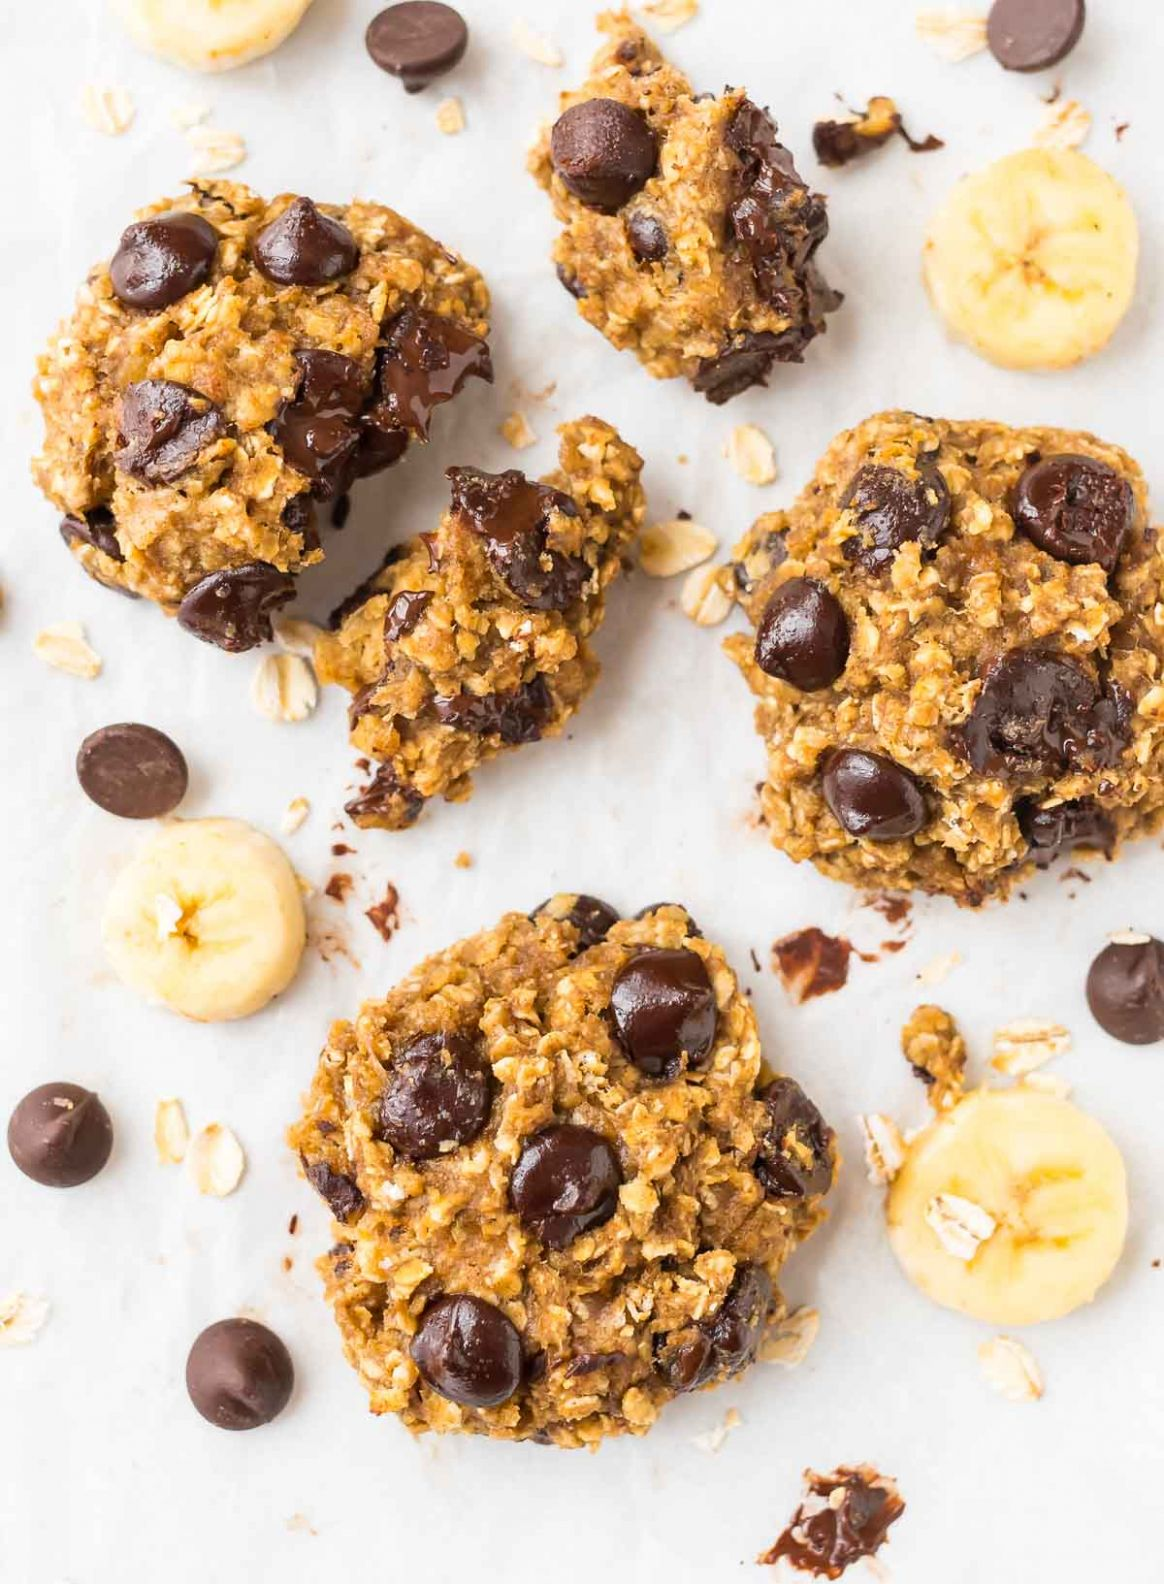 Banana Oatmeal Cookies with Chocolate Chips - Healthy Recipes Cookies